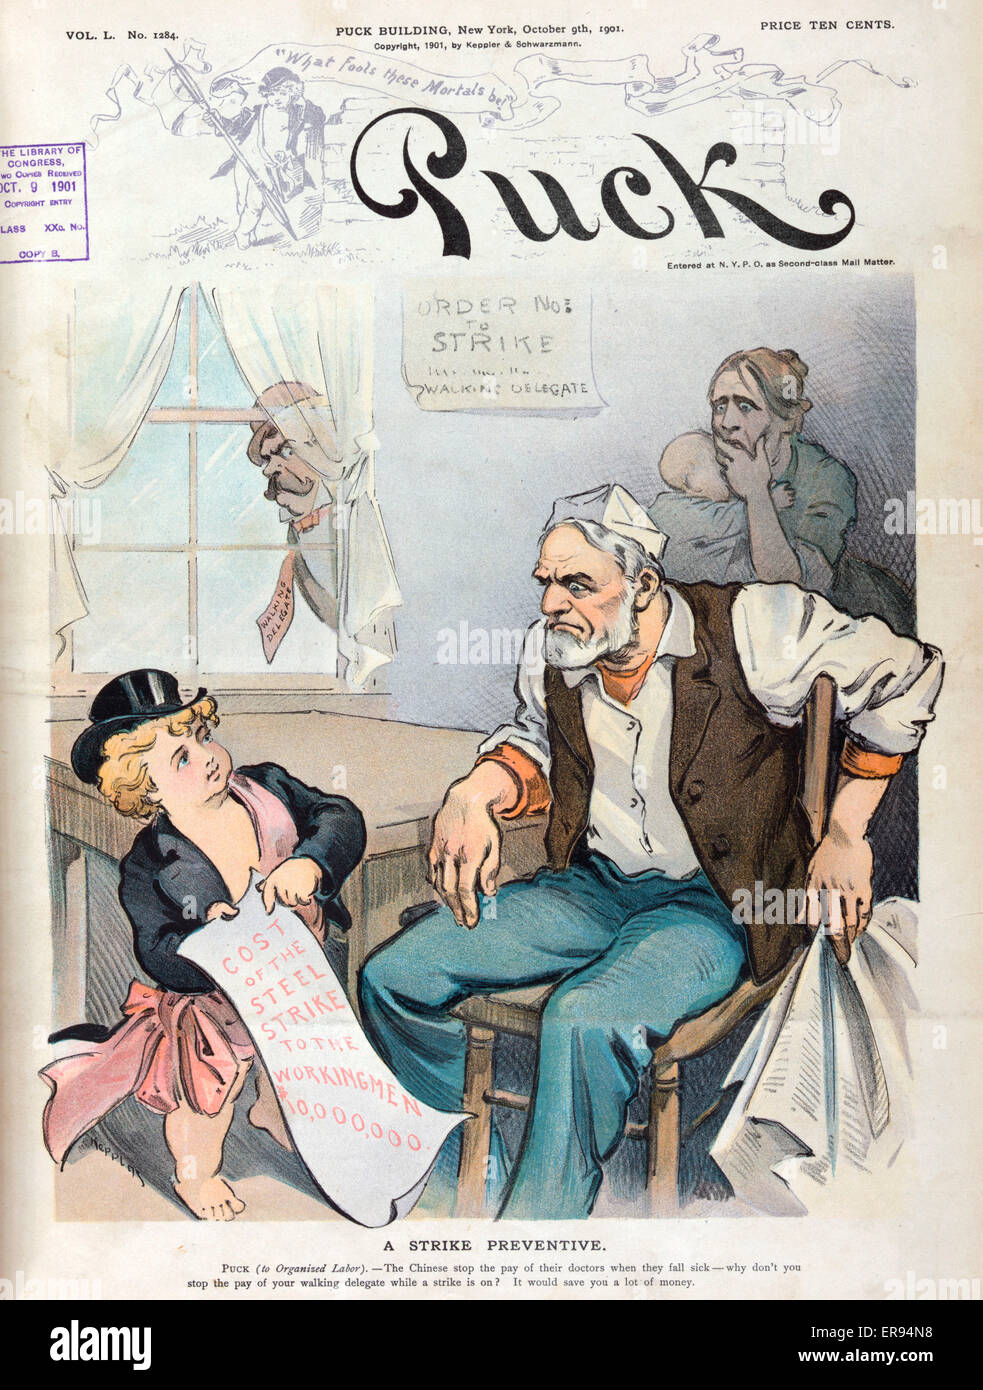 A strike preventive. Illustration shows Puck talking to a laborer who is sitting at home, on strike; Puck shows - Stock Image